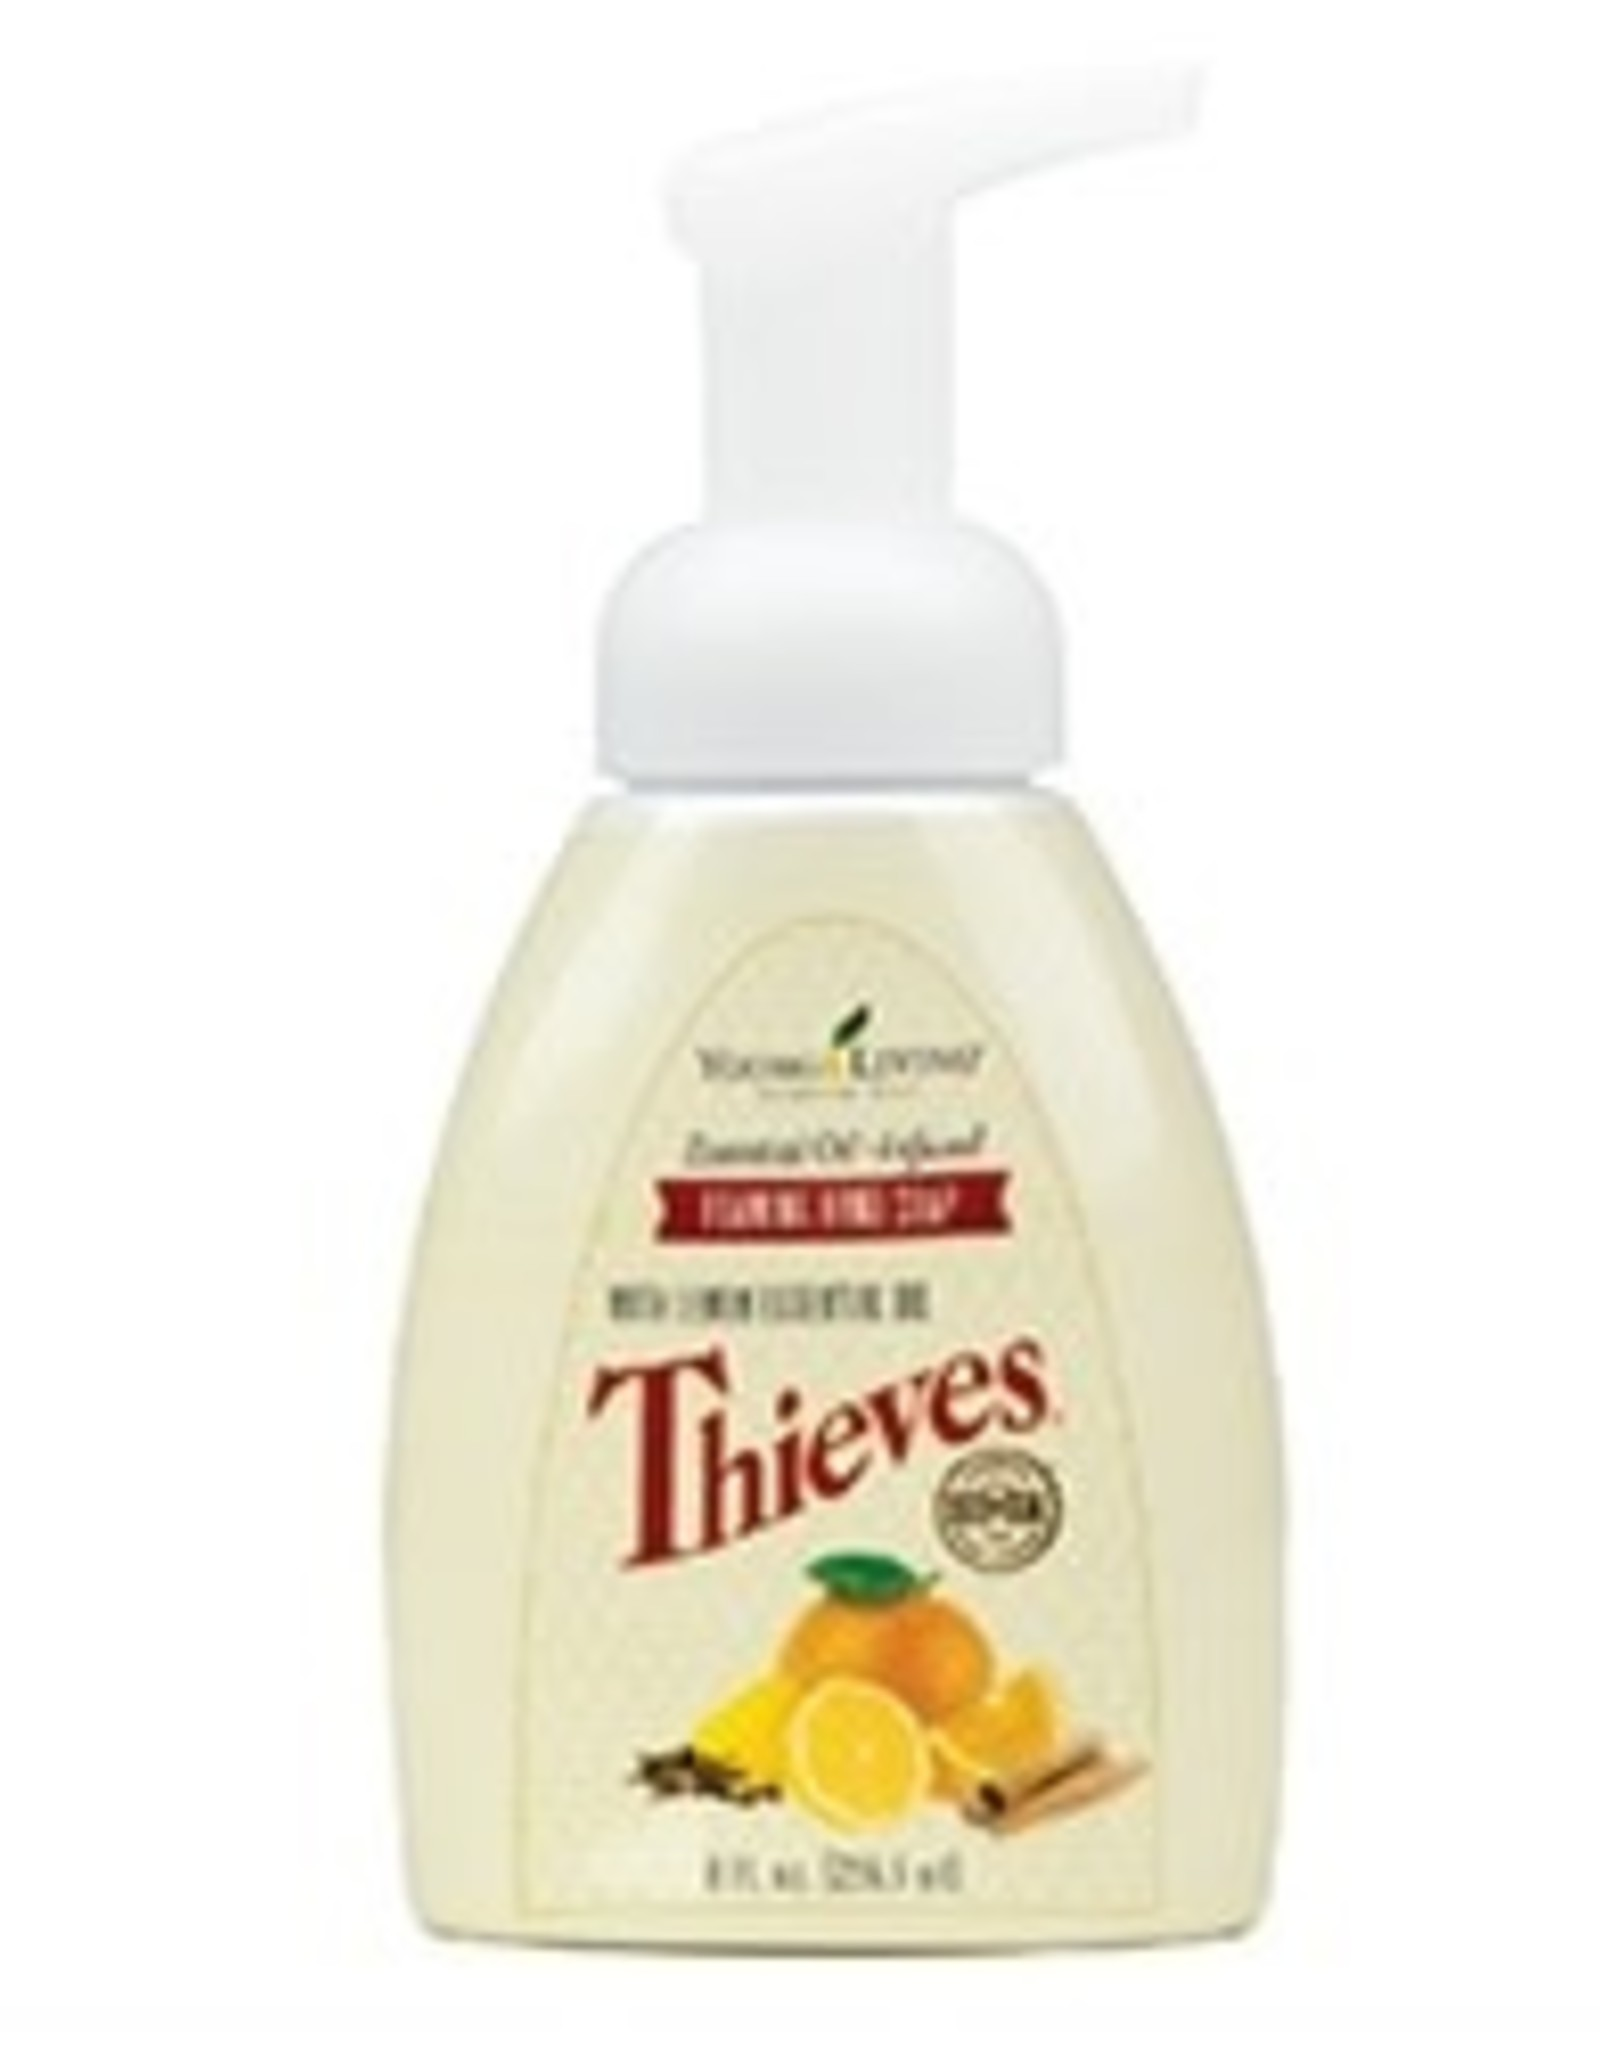 Young Living Thieves Foaming Handsoap (8 oz.)